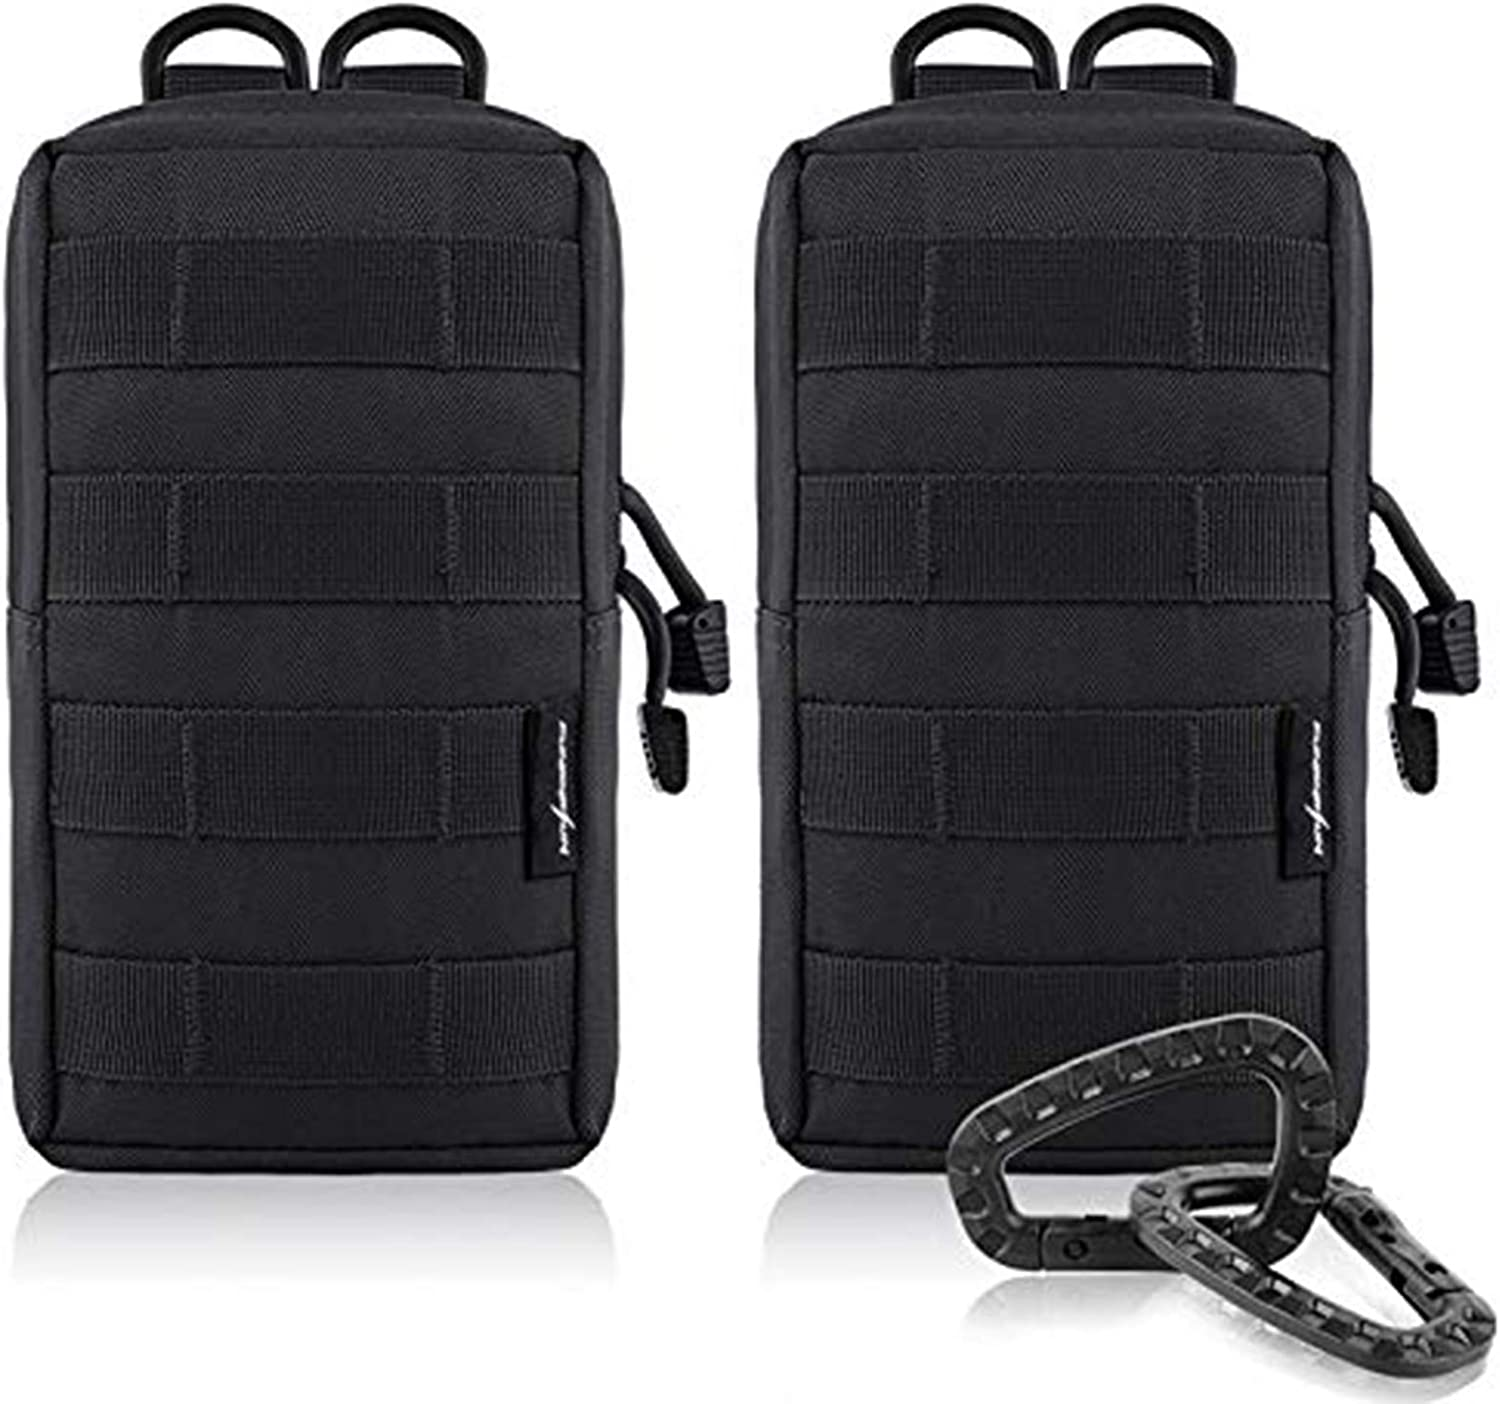 FUNANASUN 2 Pack Molle Pouches Tactical Compact Water Resistant EDC Pouch (Black) : Sports & Outdoors